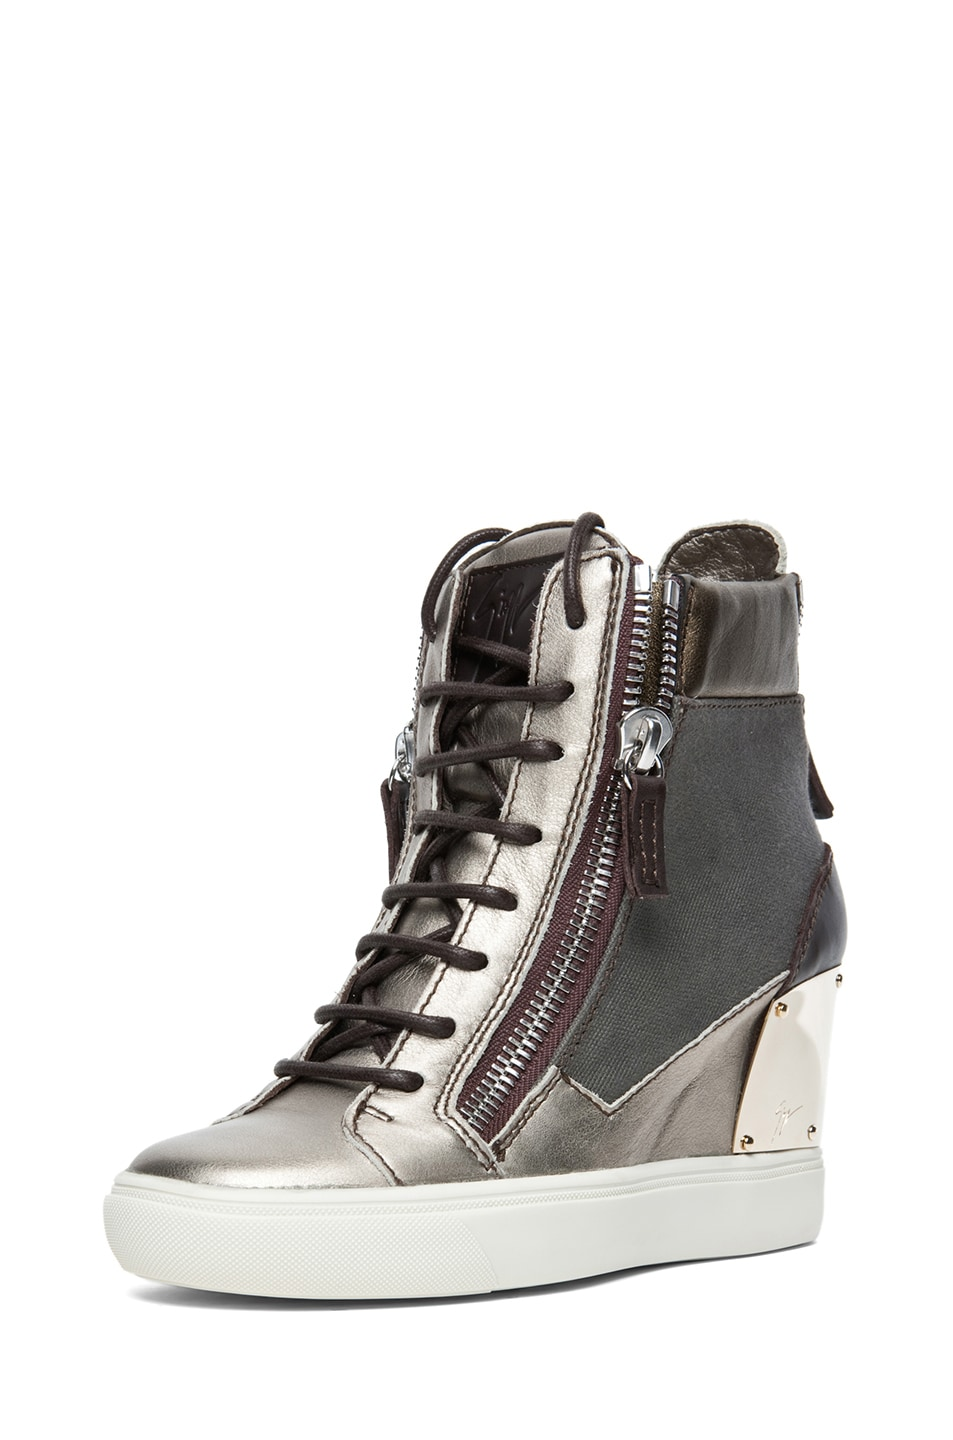 Image 2 of Giuseppe Zanotti Canvas & Leather Wedge Sneakers in Khaki & Metallic